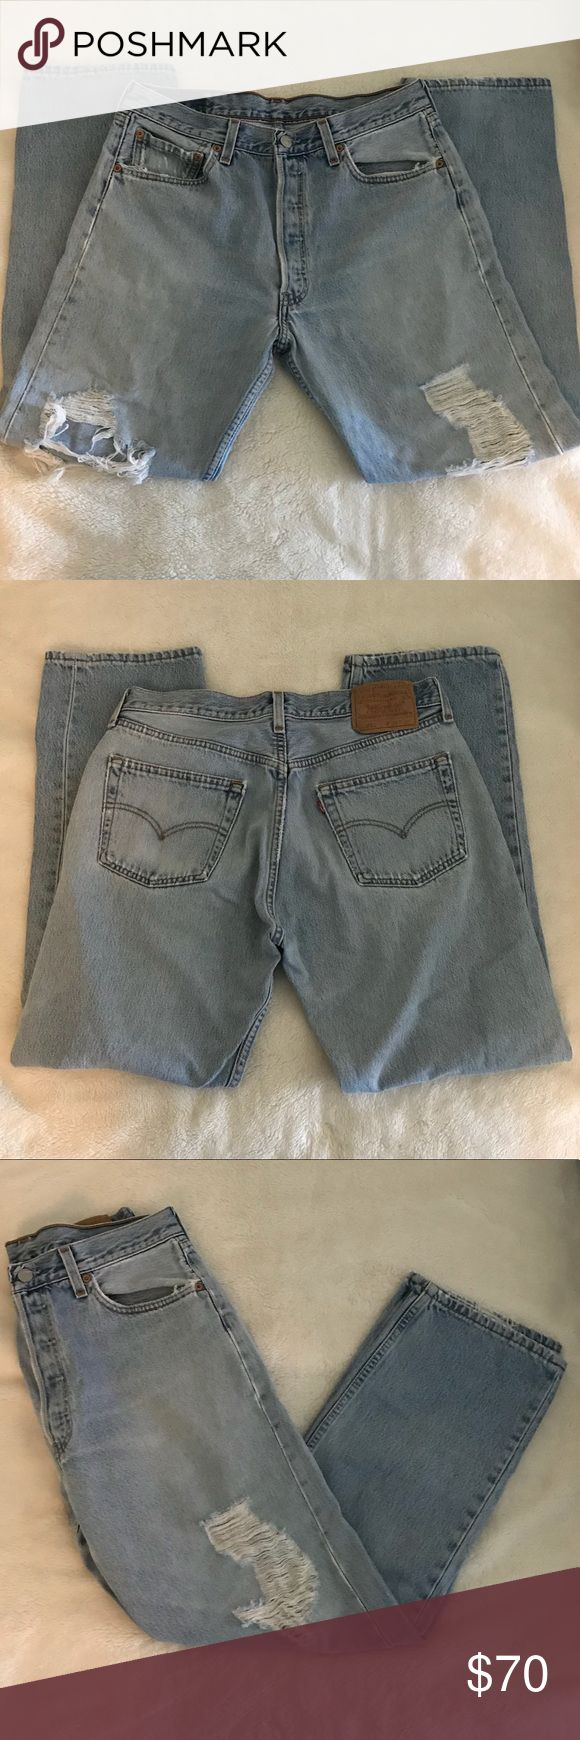 Vintage Levi 501 High Waisted Jeans Vintage Levi 501 high waisted ripped jeans. Size W 34 L 30. Light wash. Great condition.  Ladies you can use them as boyfriend jeans fits amazing 😉 Levi's Jeans Relaxed